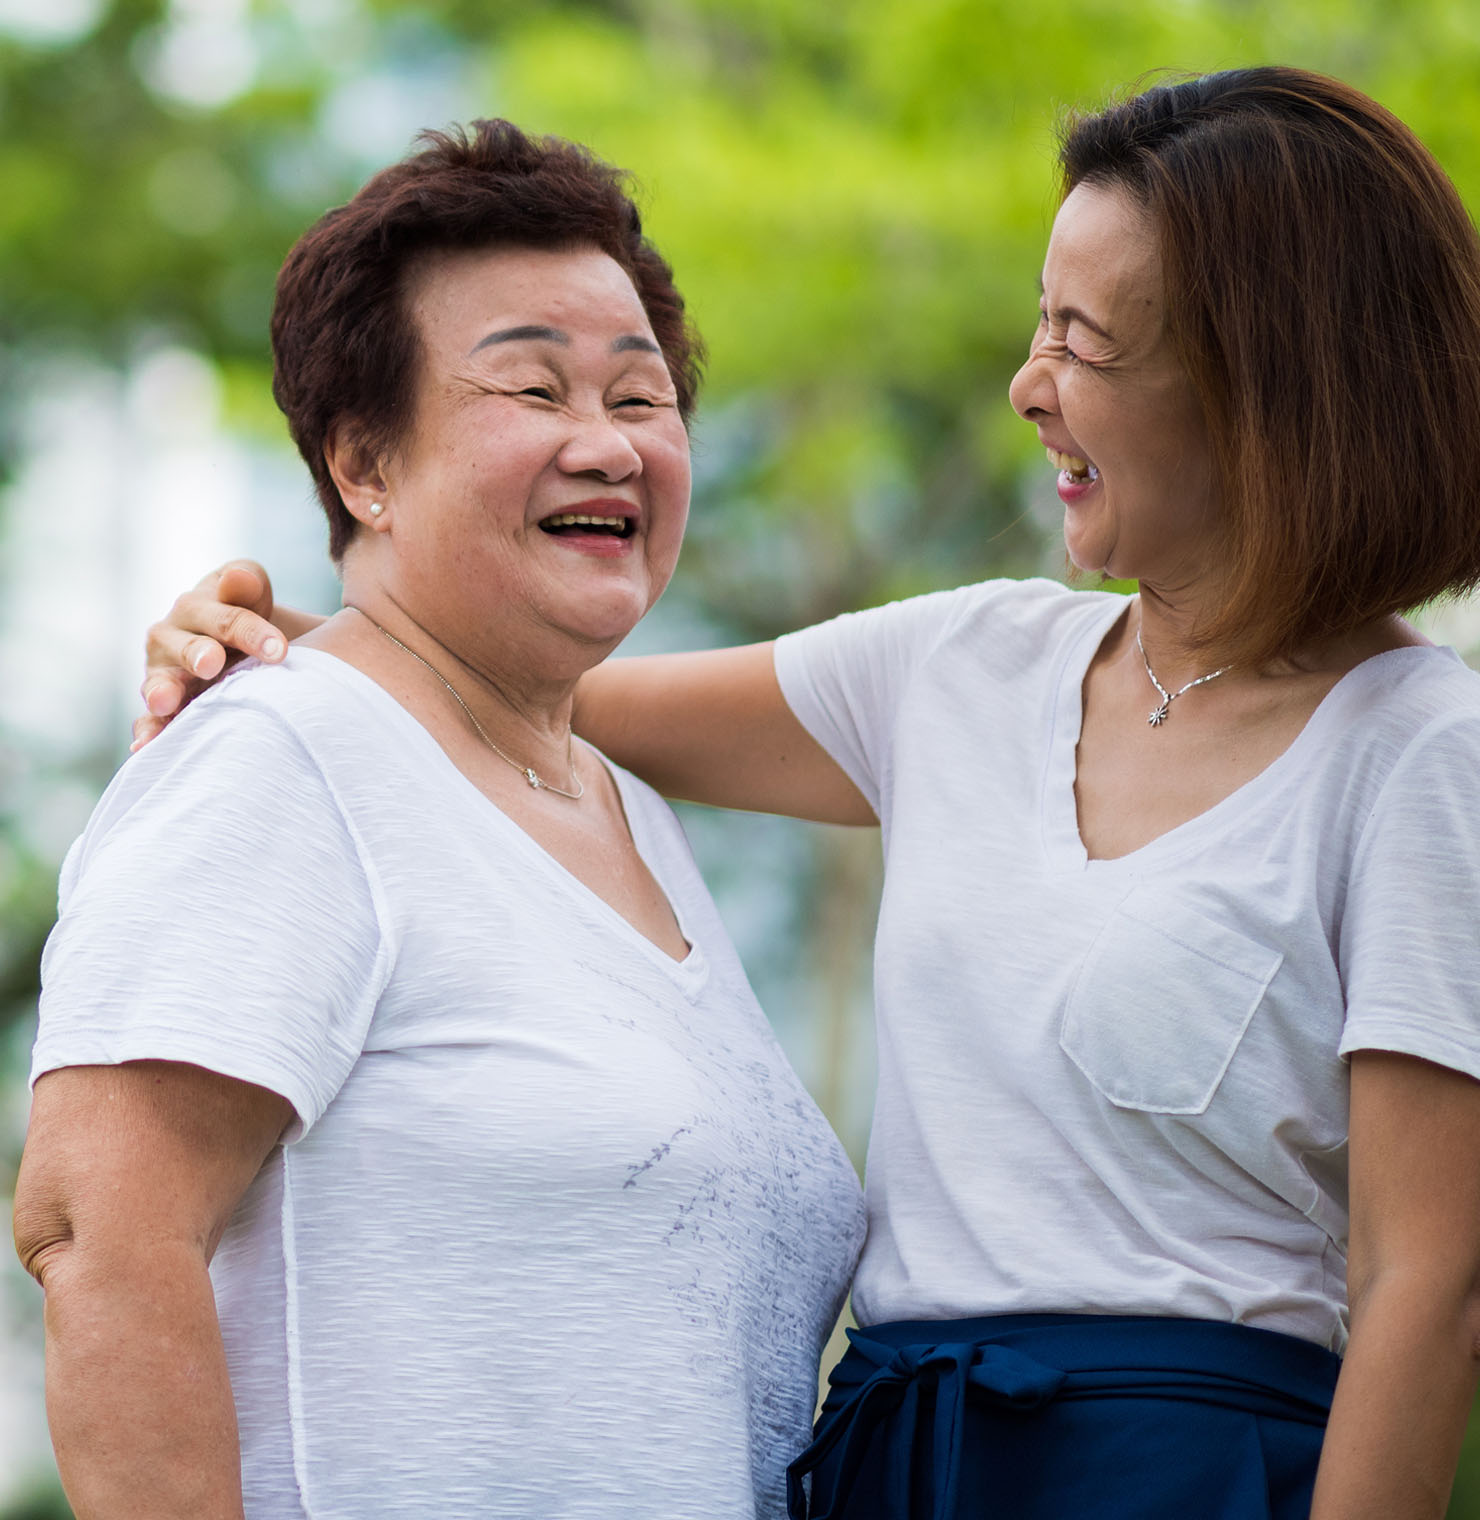 A young woman and her mother, smiling outside